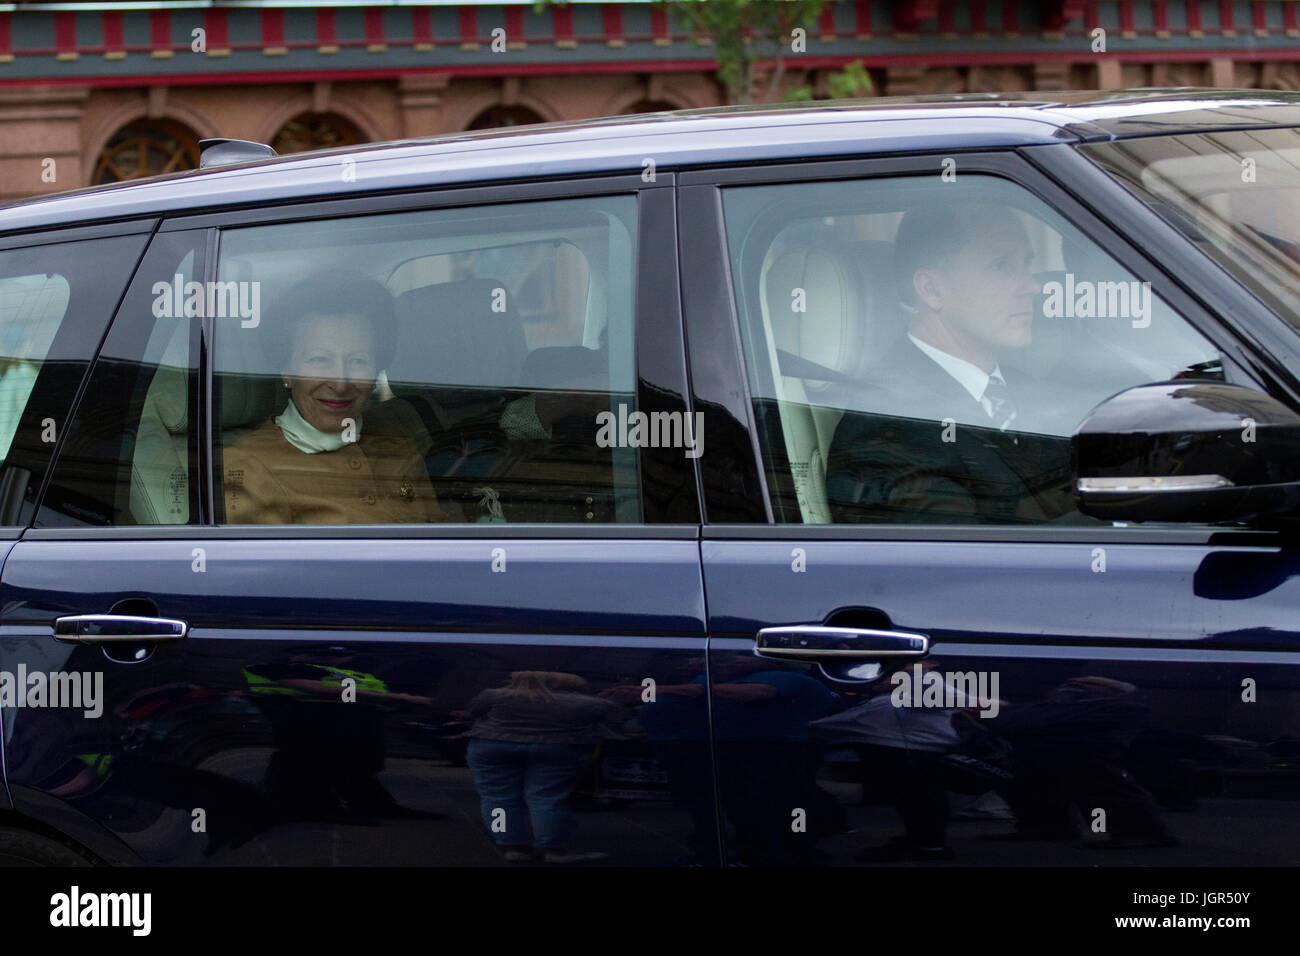 Dundee, Tayside, Scotland, UK. 10th July, 2017. Official engagements undertaken by members of the Royal Family today. Stock Photo